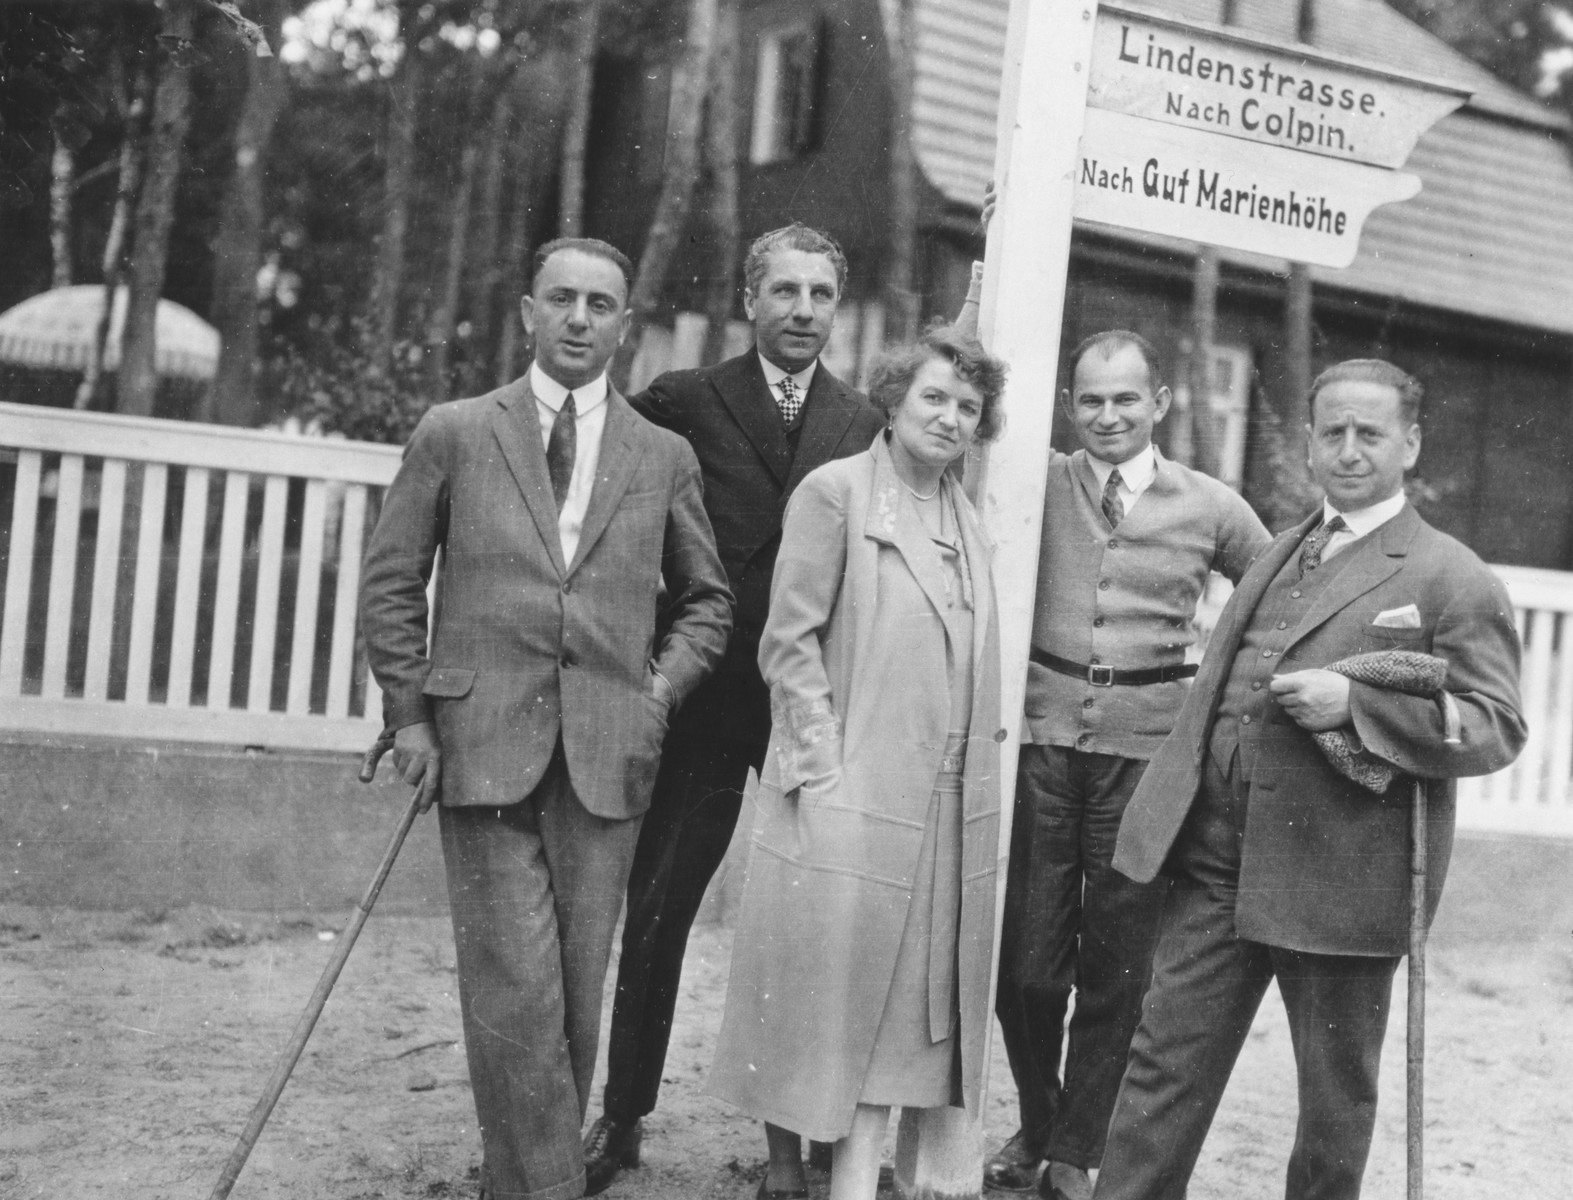 A group of German Jews poses next to a street sign in a resort town in Germany.  Among those pictured is Ludwig Plachte (at the left) and Mr. Salomon, Ludwig's business partner (on the right).